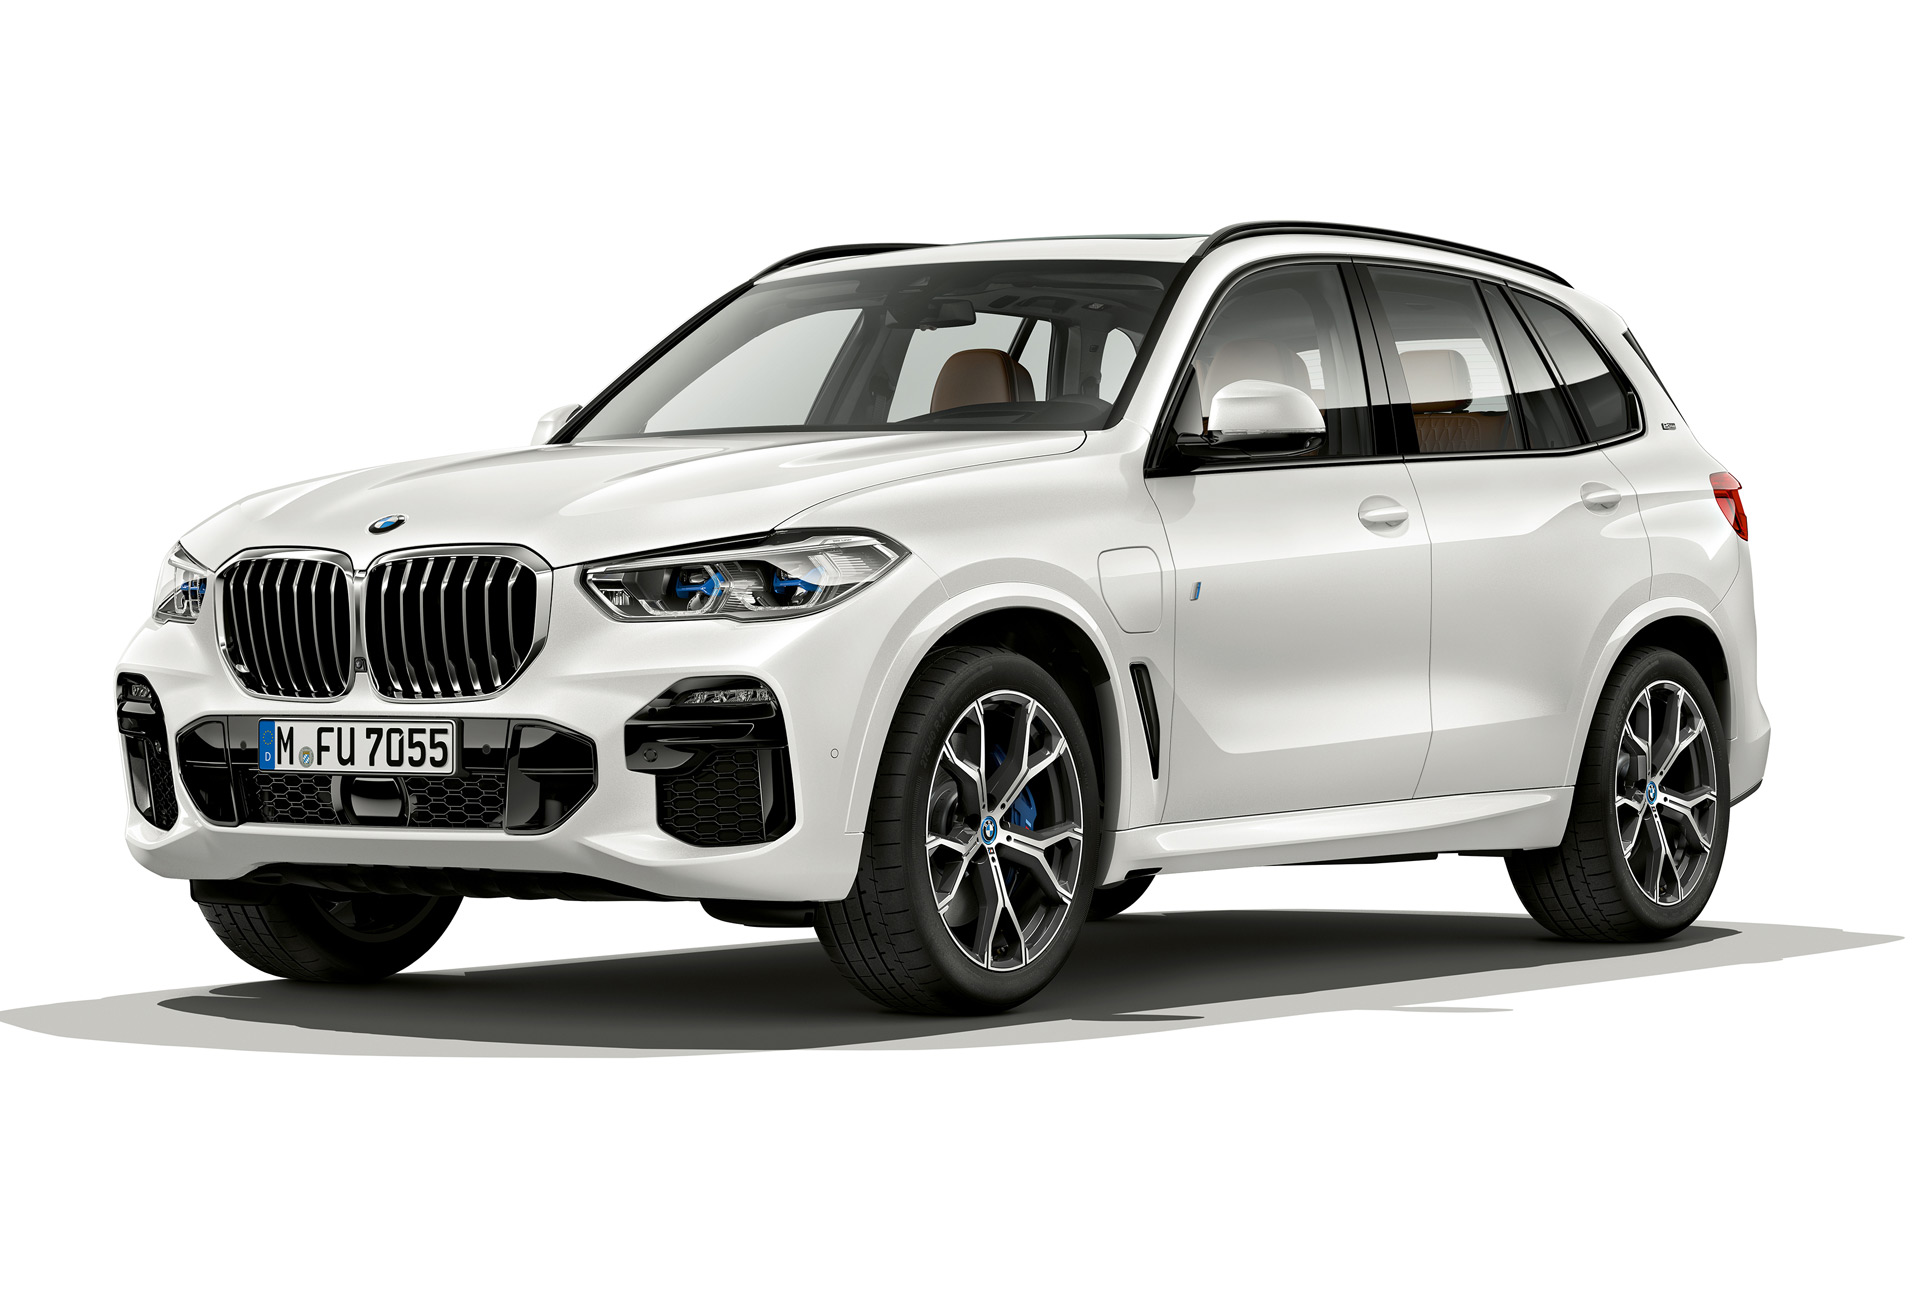 2021 Bmw X5 Xdrive45e Iperformance Plug In Hybrid Promises More Electric Range